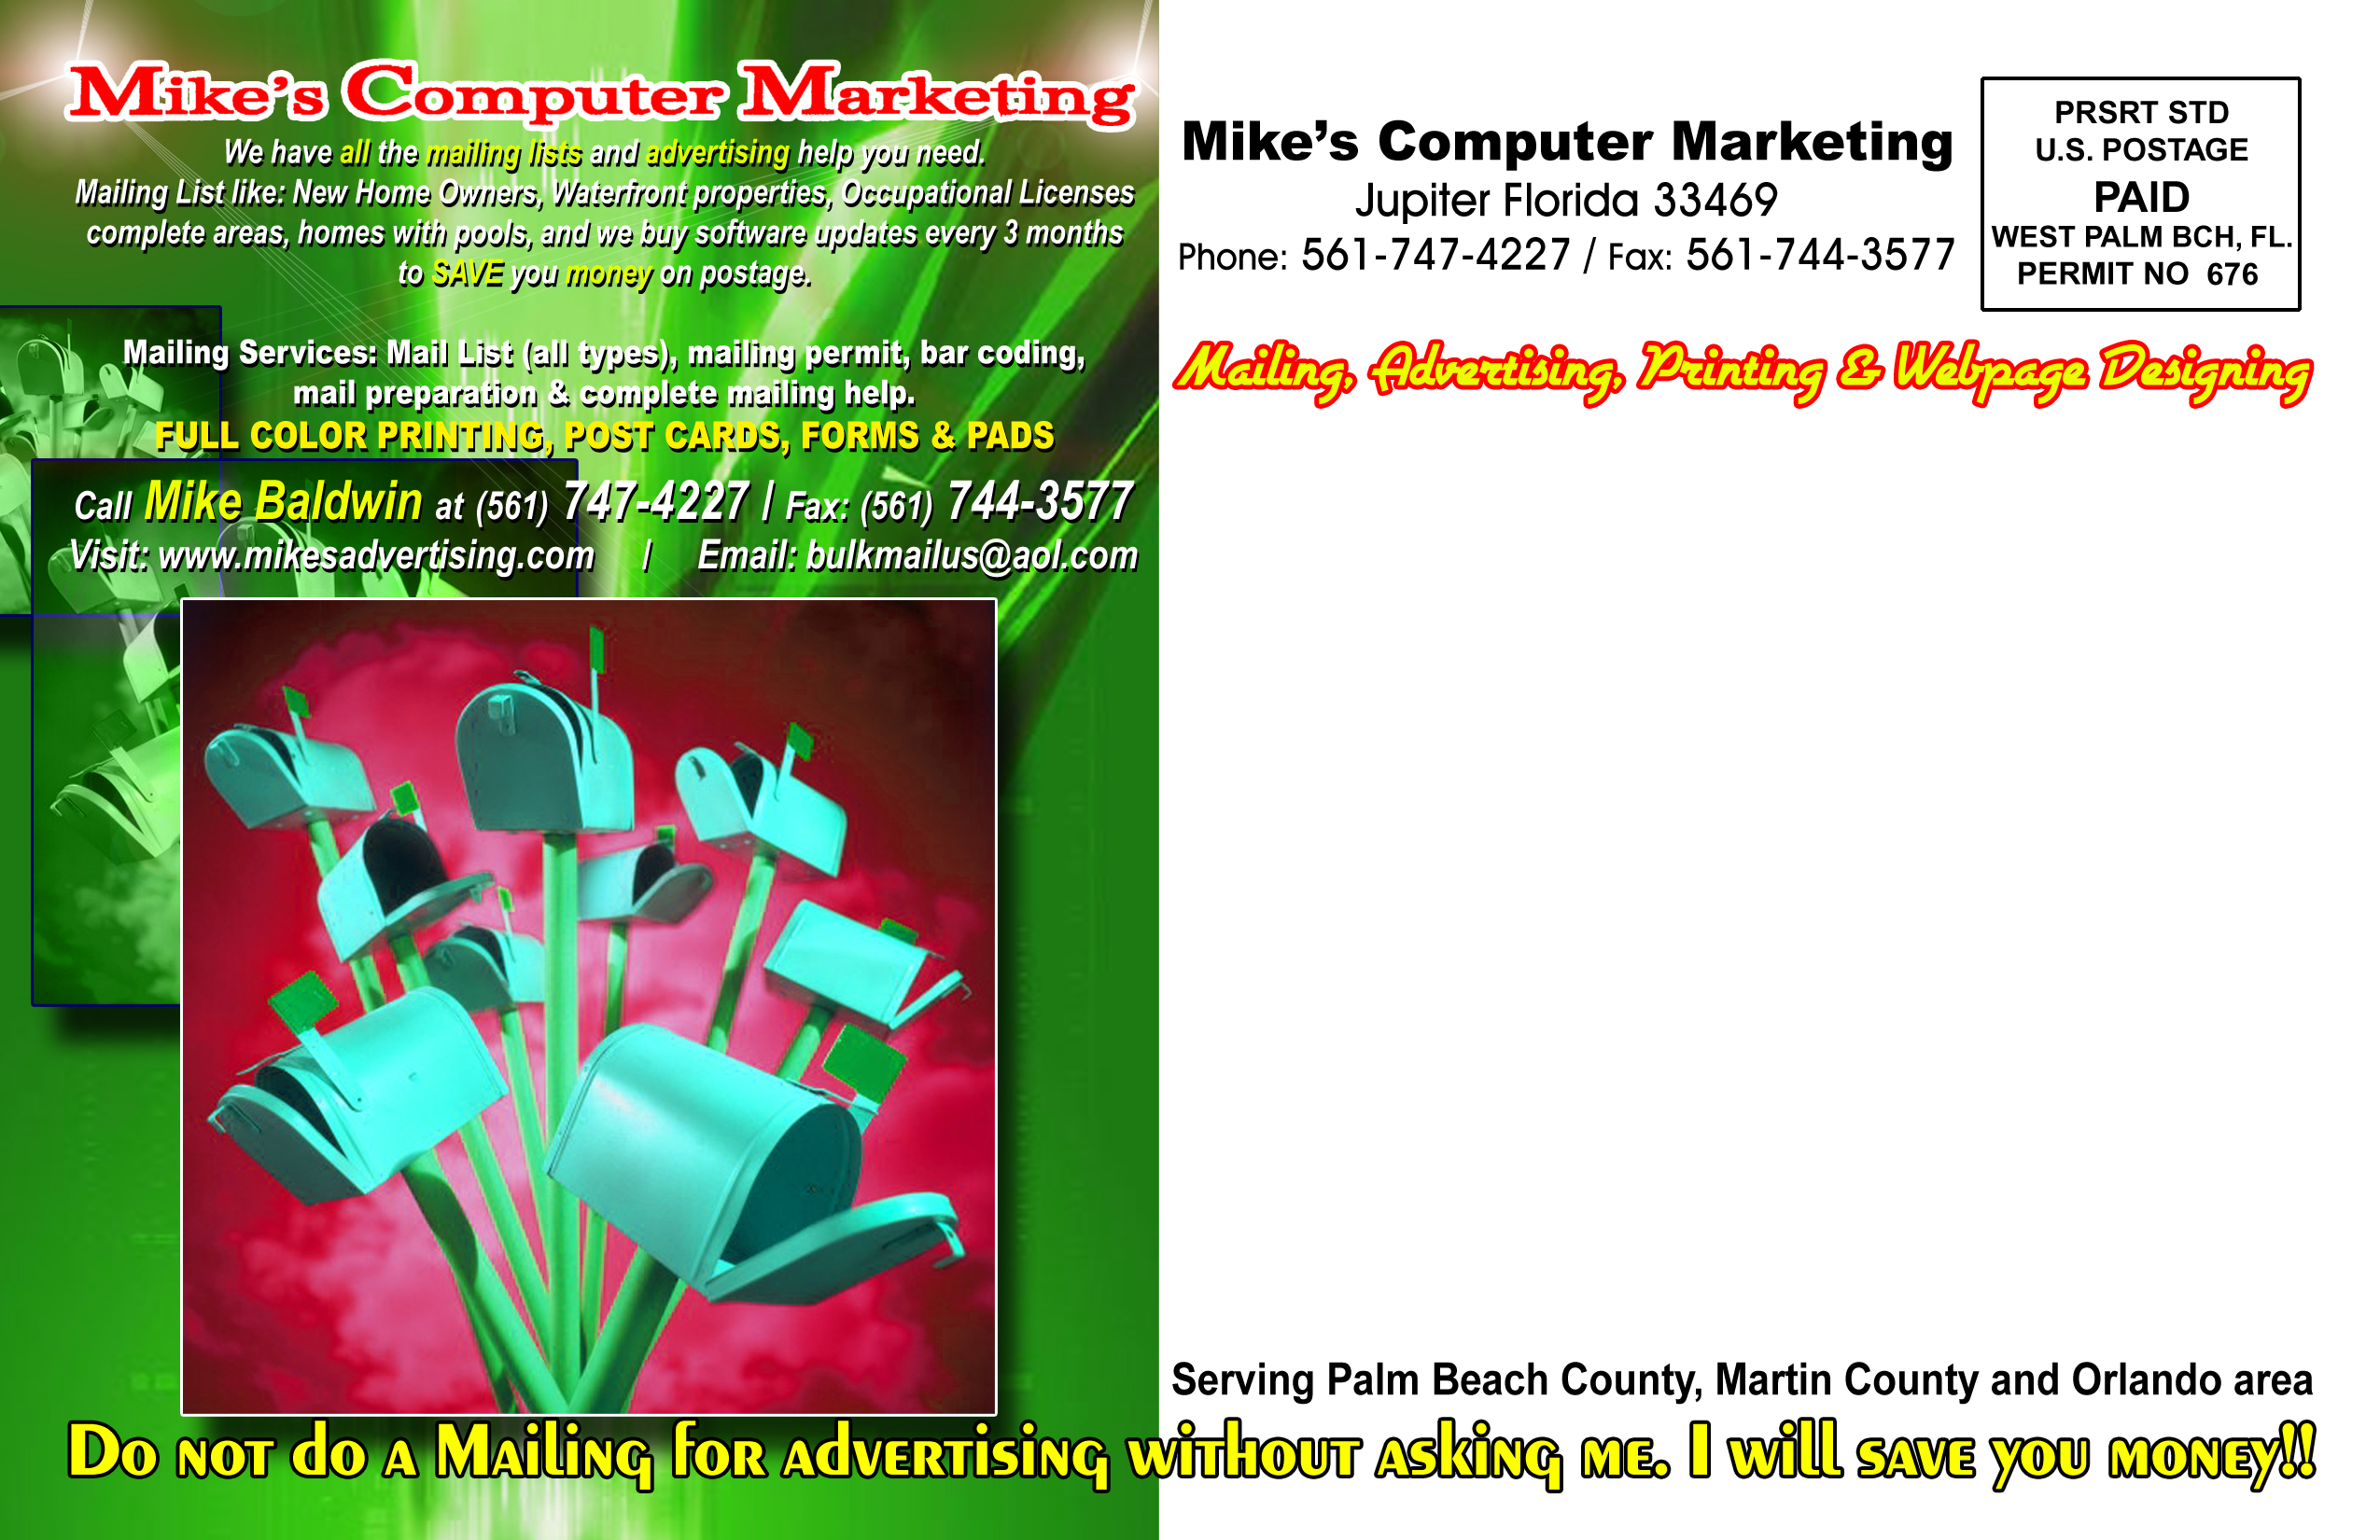 mikes computer marketing mailing examples